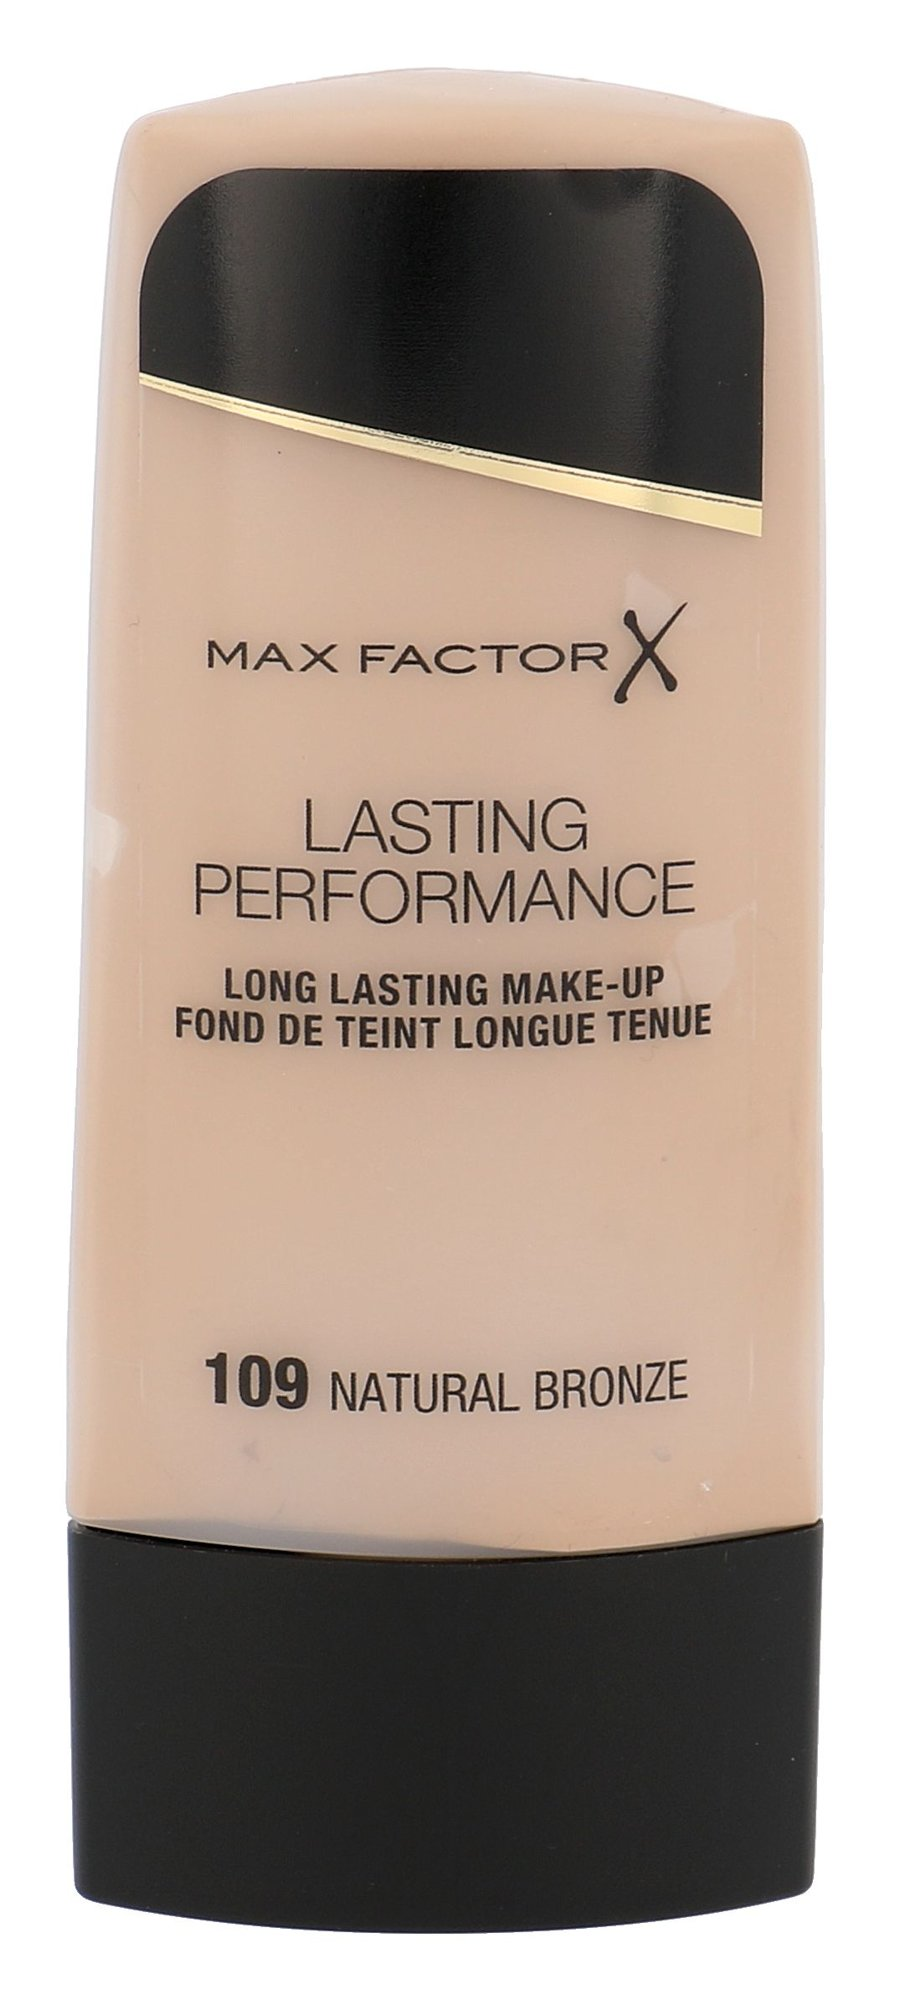 Max Factor Lasting Performance Cosmetic 35ml 109 Natural Bronze